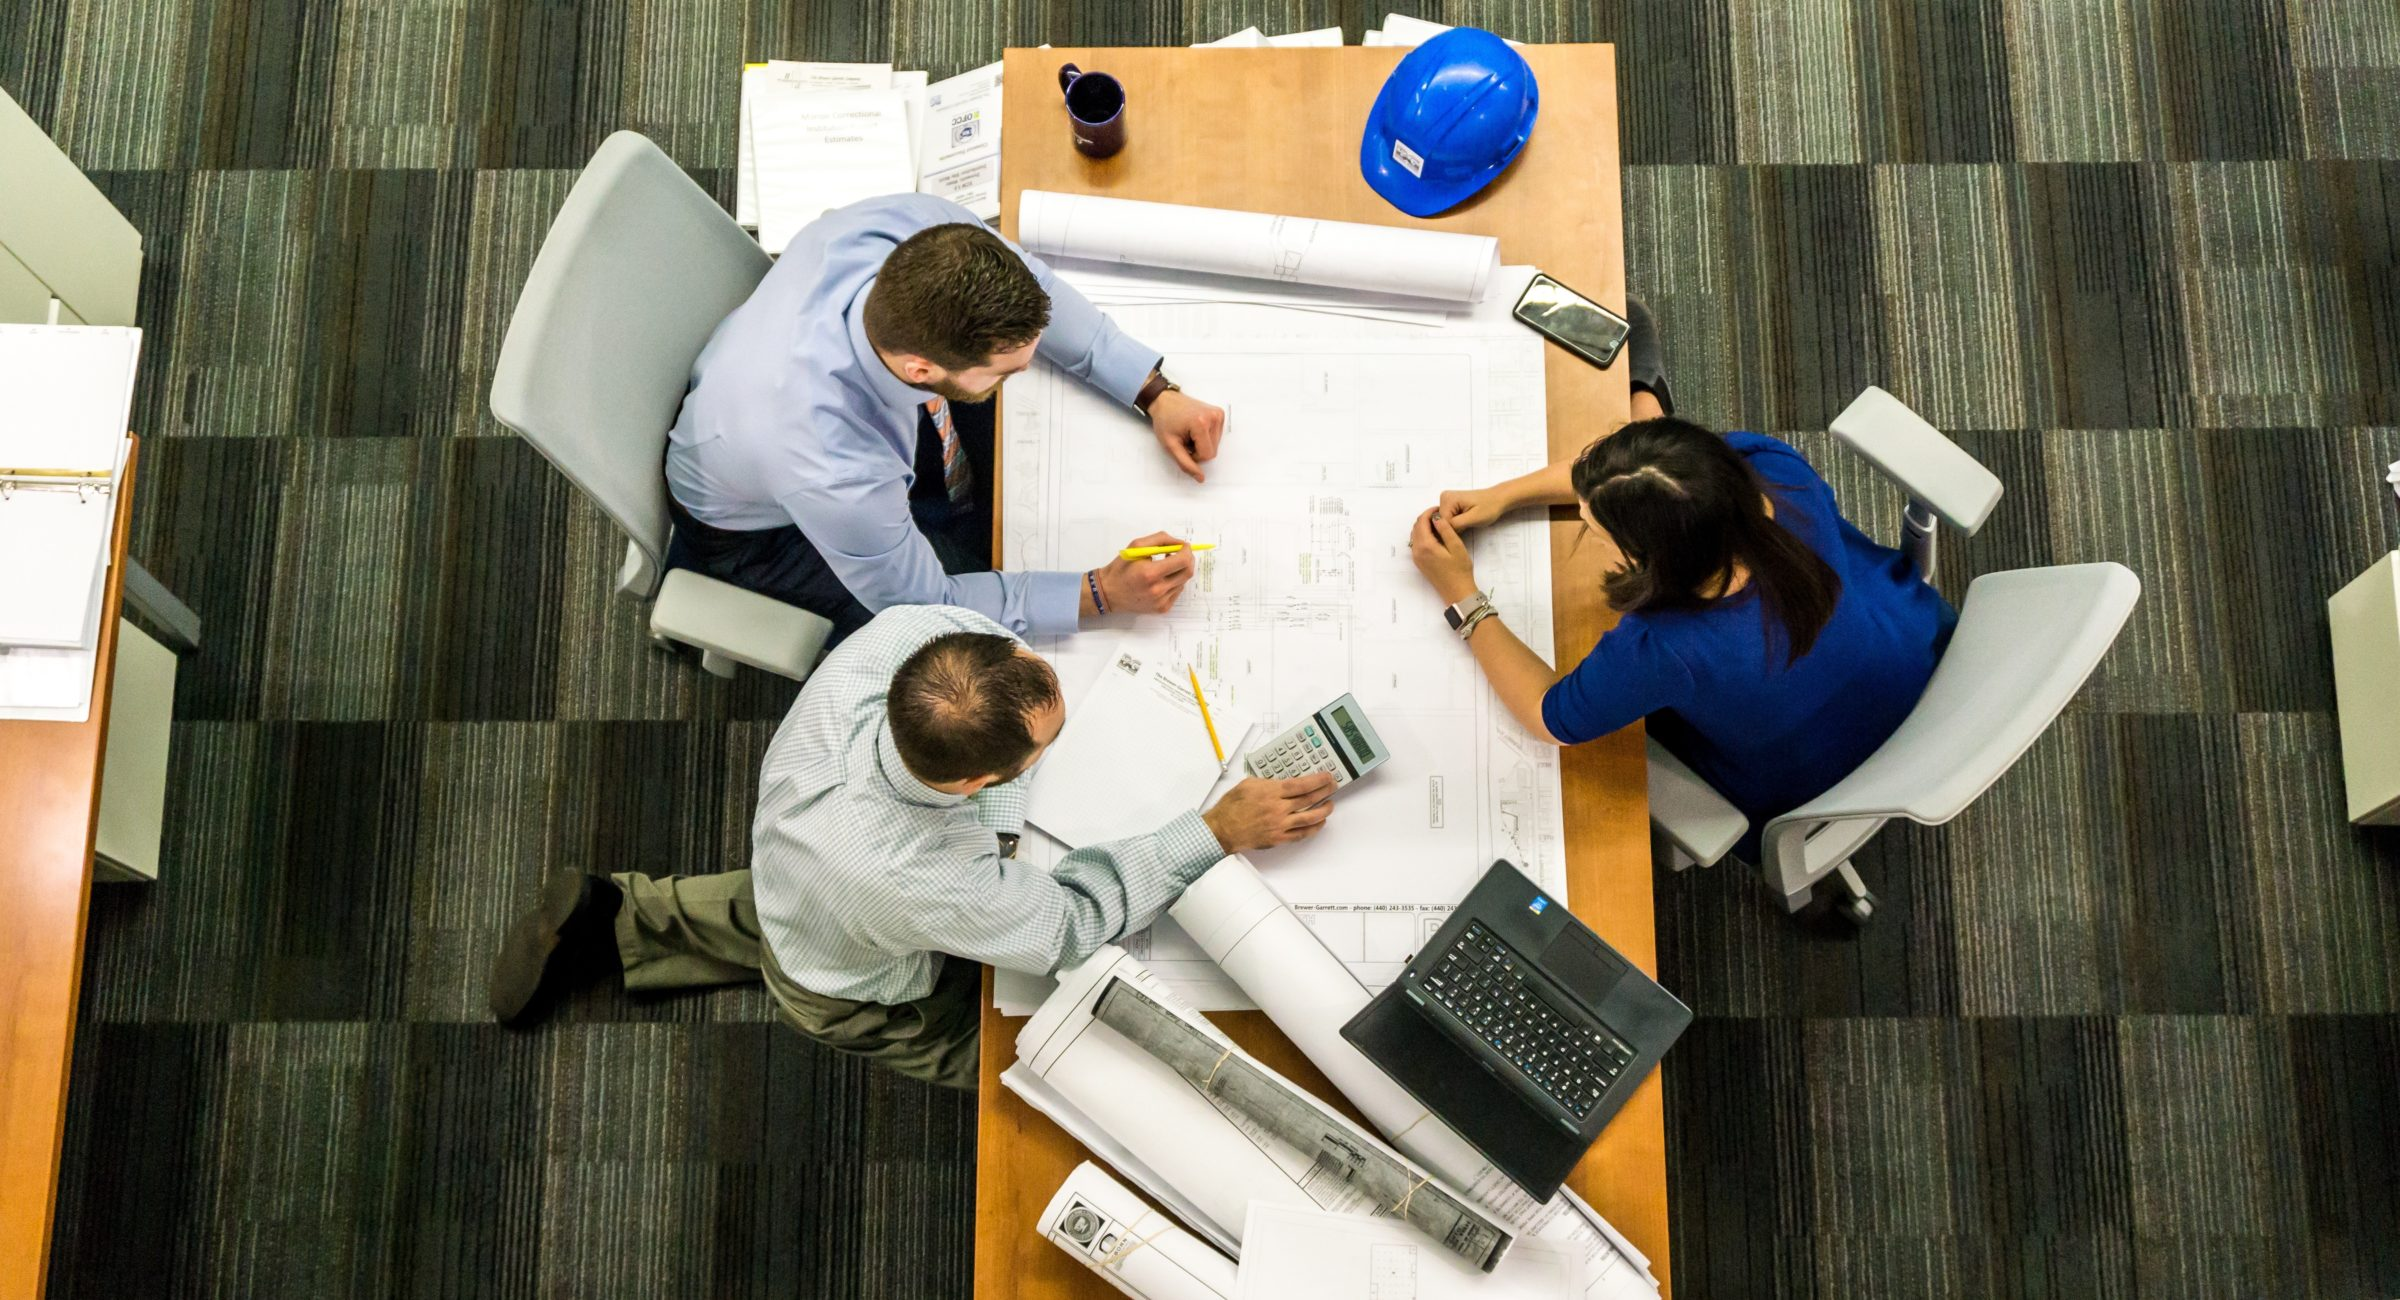 Overhead shot of people sitting around a table looking at blueprints